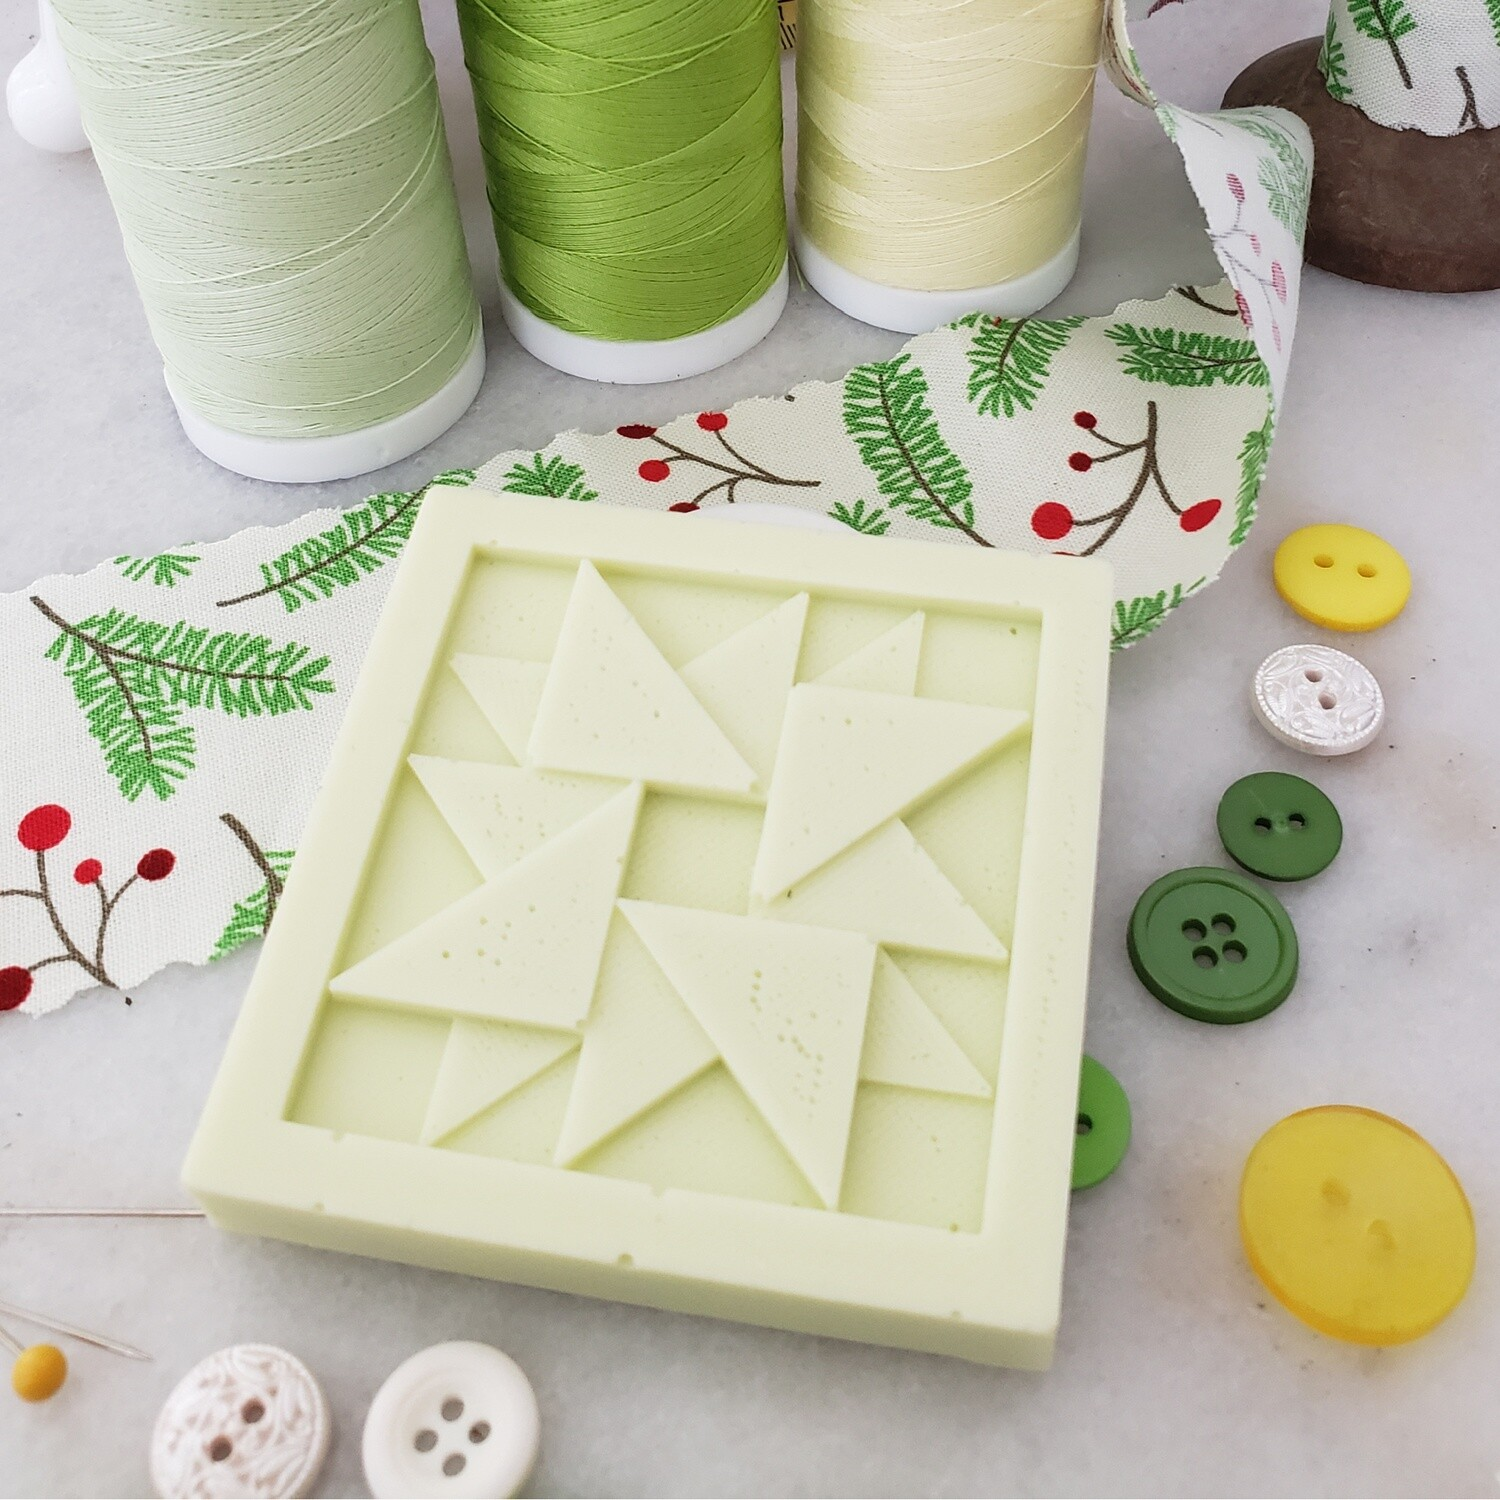 TWO Vermont Pear Tree Quilt Block Soaps